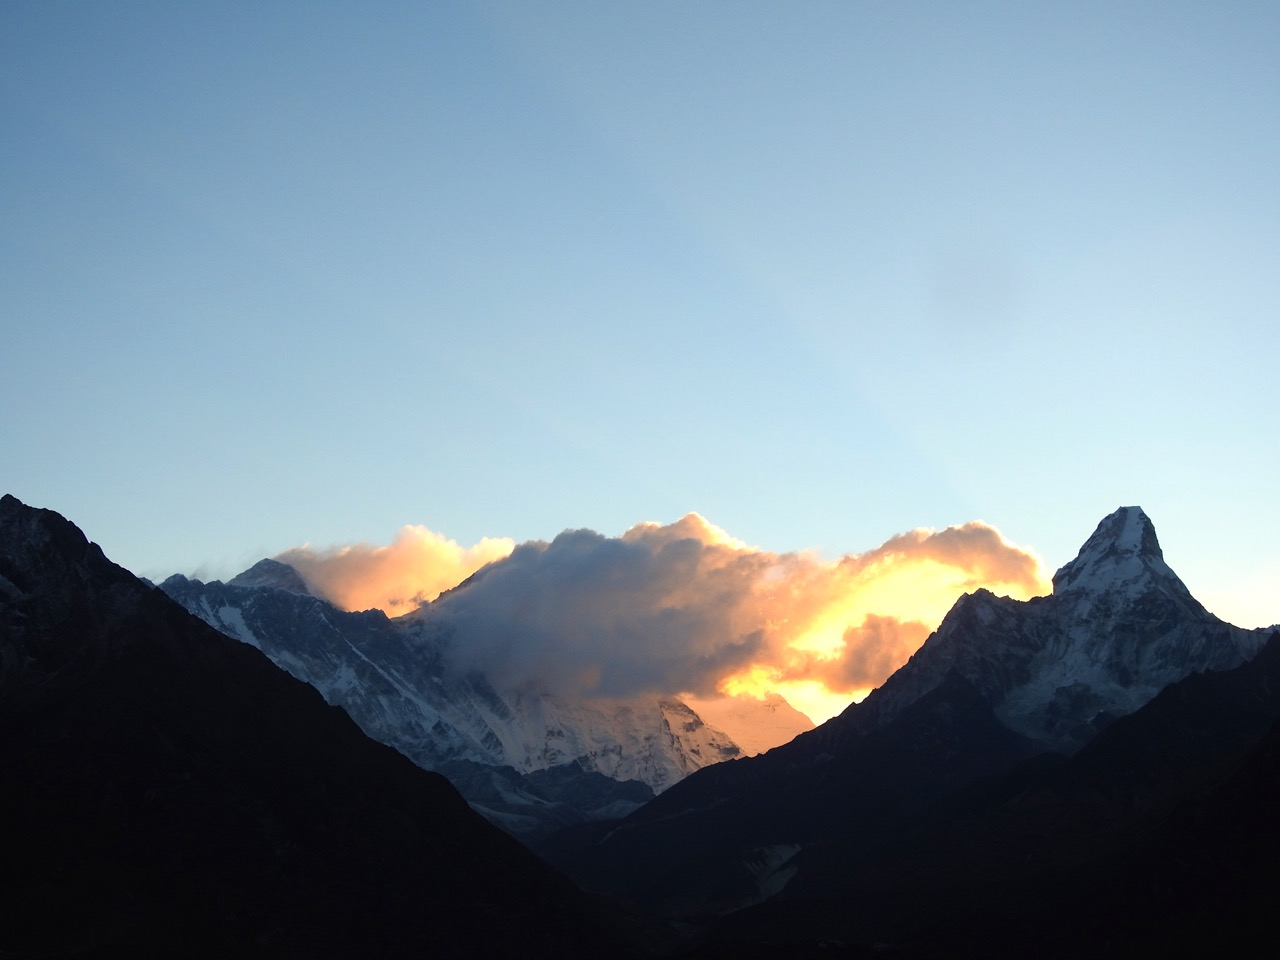 Sunrise in the Himalayas. Clouds and snow blow off the peak of Mt. Everest. Ama Dablam is at the far right. Lhotse is in the middle, obscured by clouds.